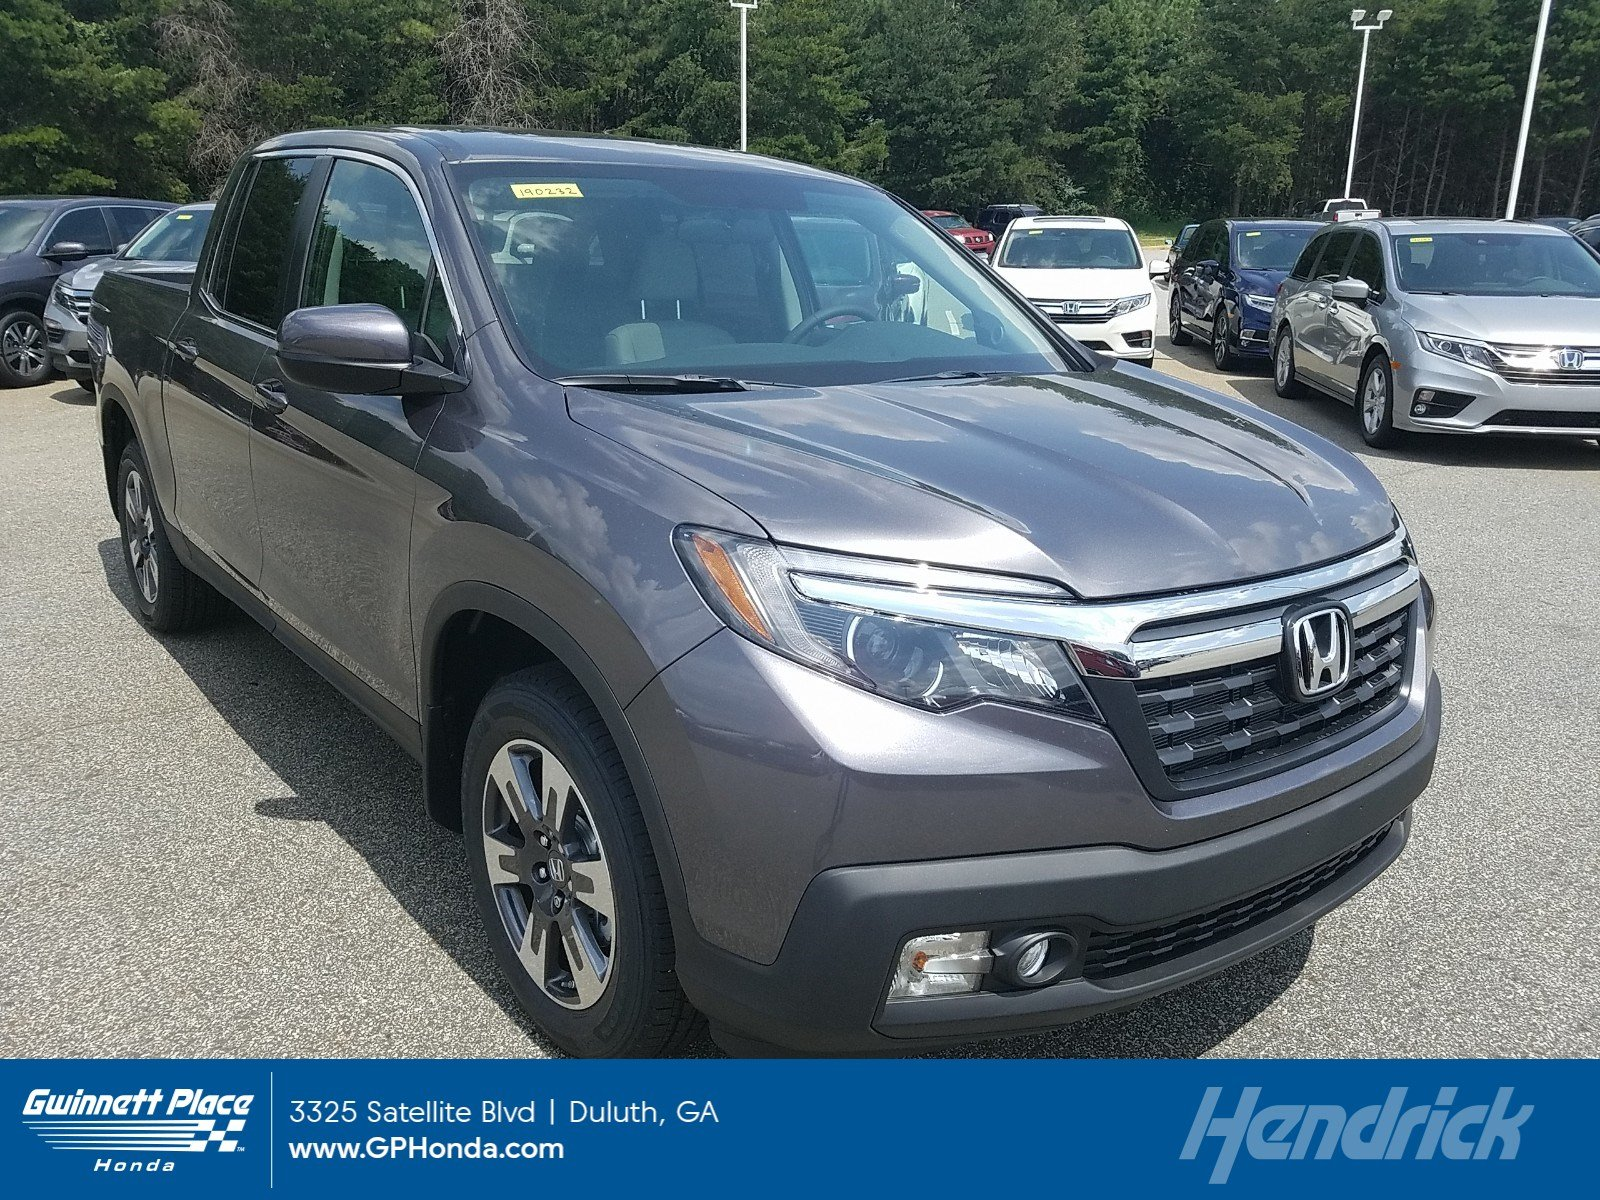 New 2019 Honda Ridgeline RTL 2WD Pickup for sale in Duluth, GA